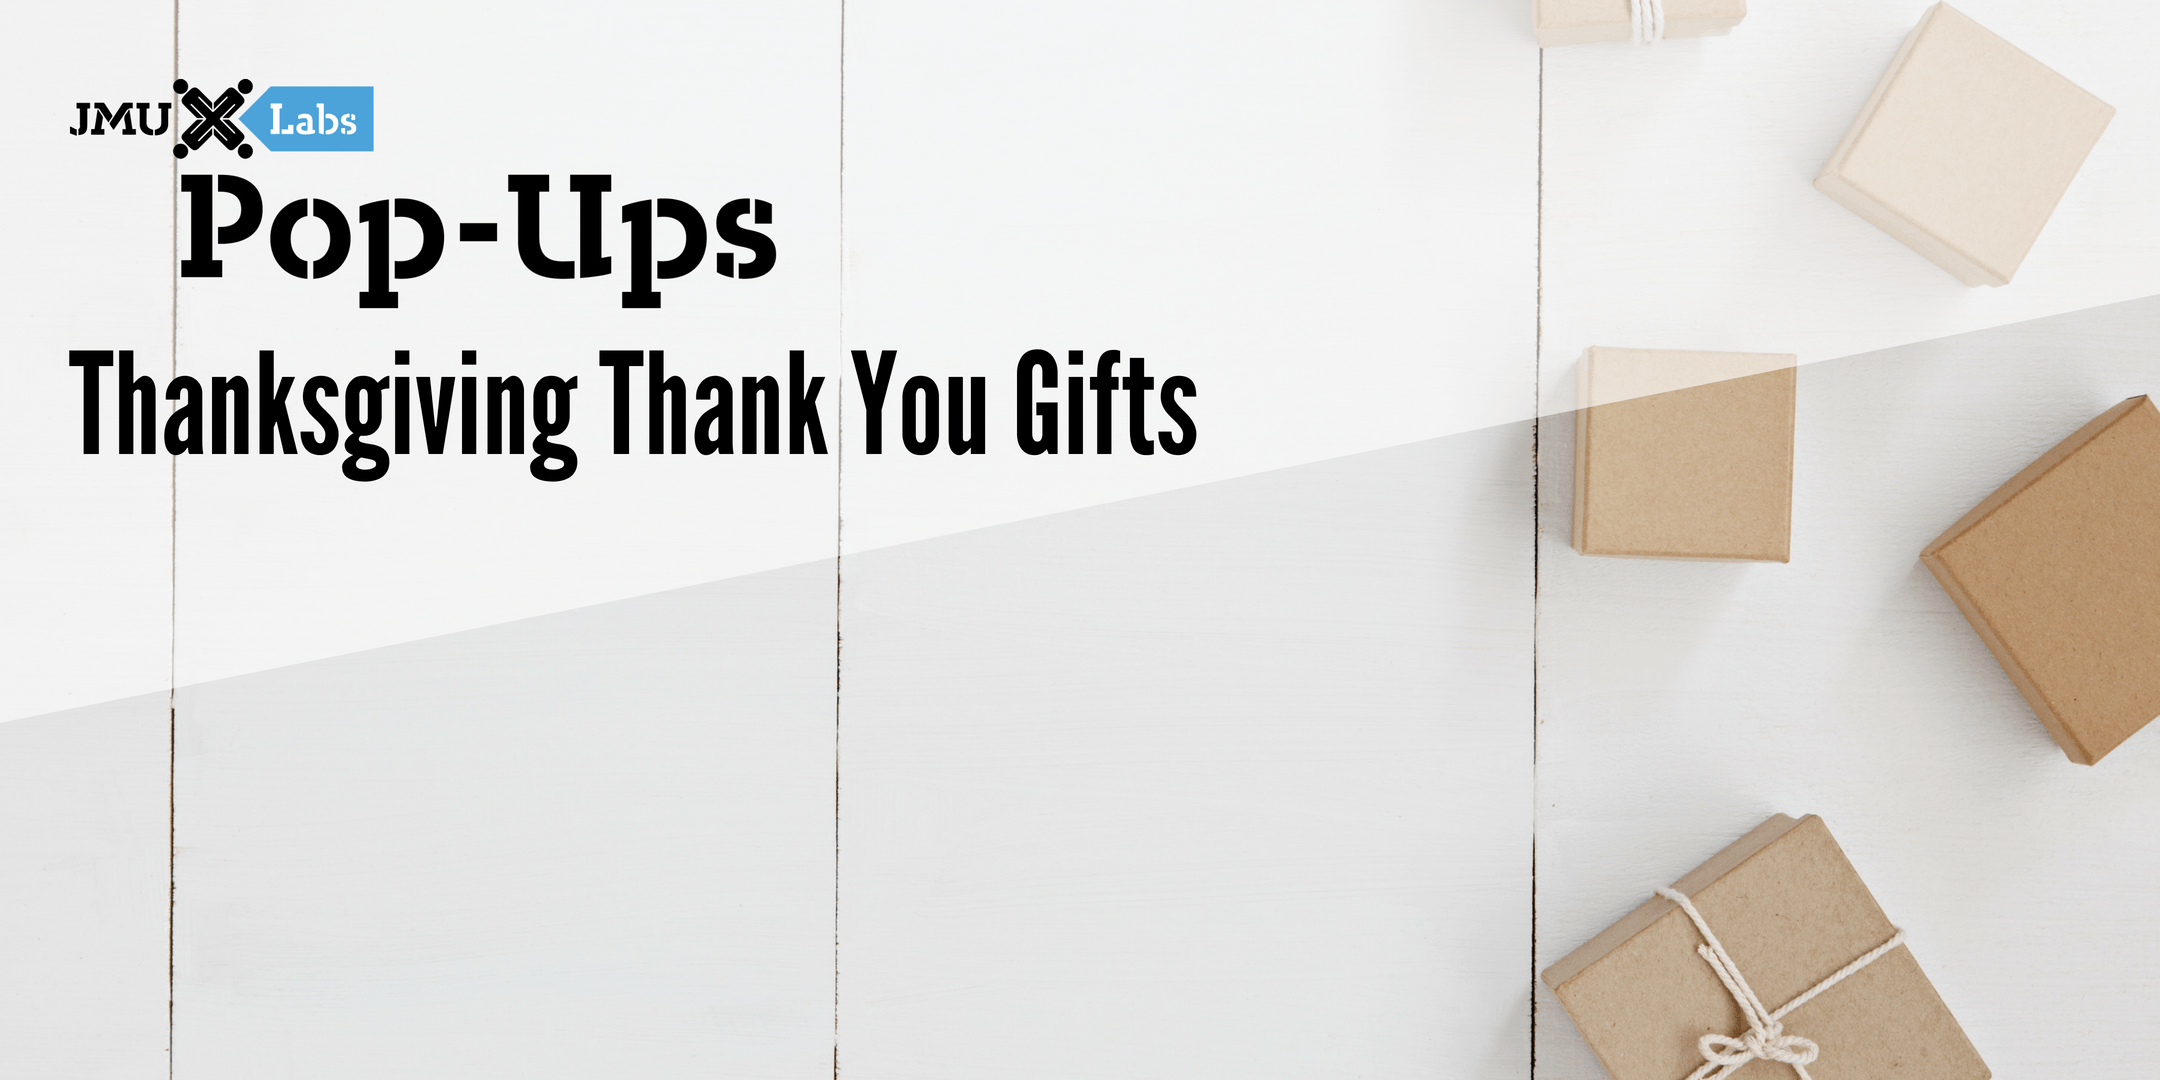 Pop-Up Workshop: Thanksgiving Thank You Gifts